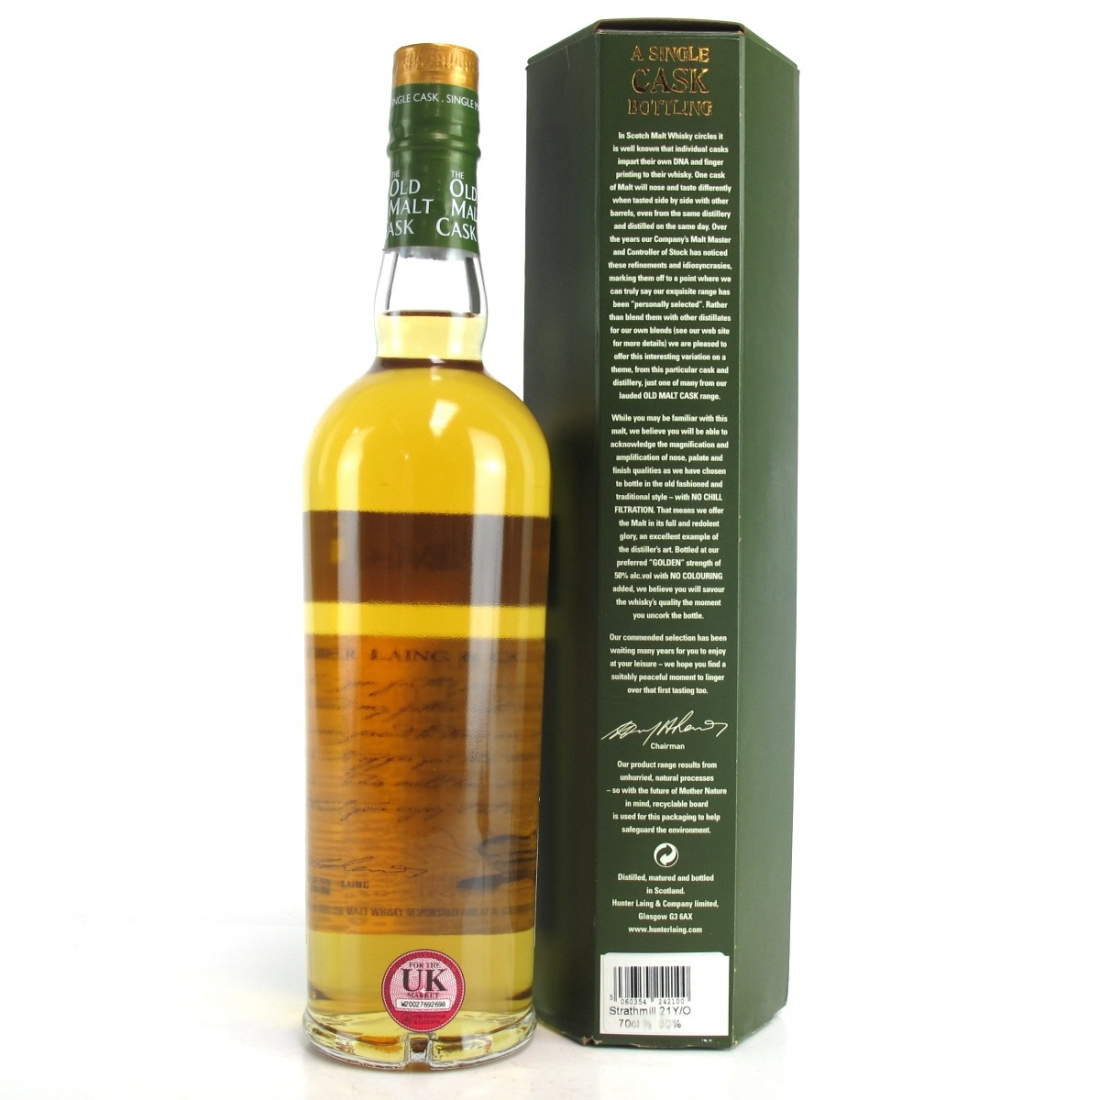 Strathmill 1991 Hunter Laing 21 Year Old